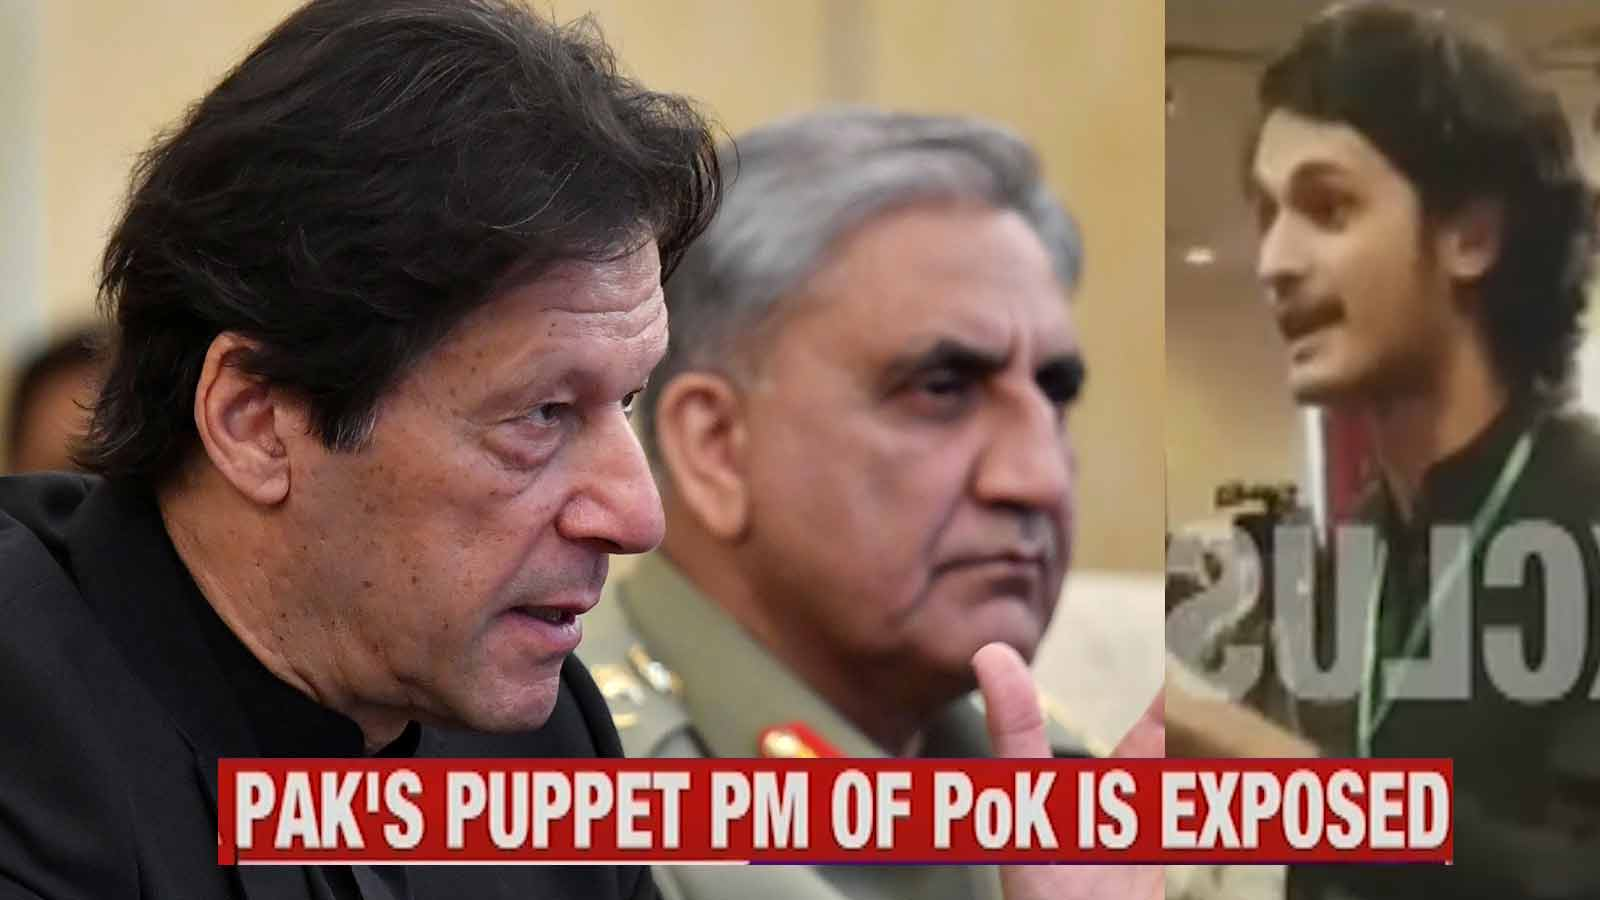 pak-pm-imran-khan-exposed-now-pakistani-questions-imran-khan-over-violations-in-pok